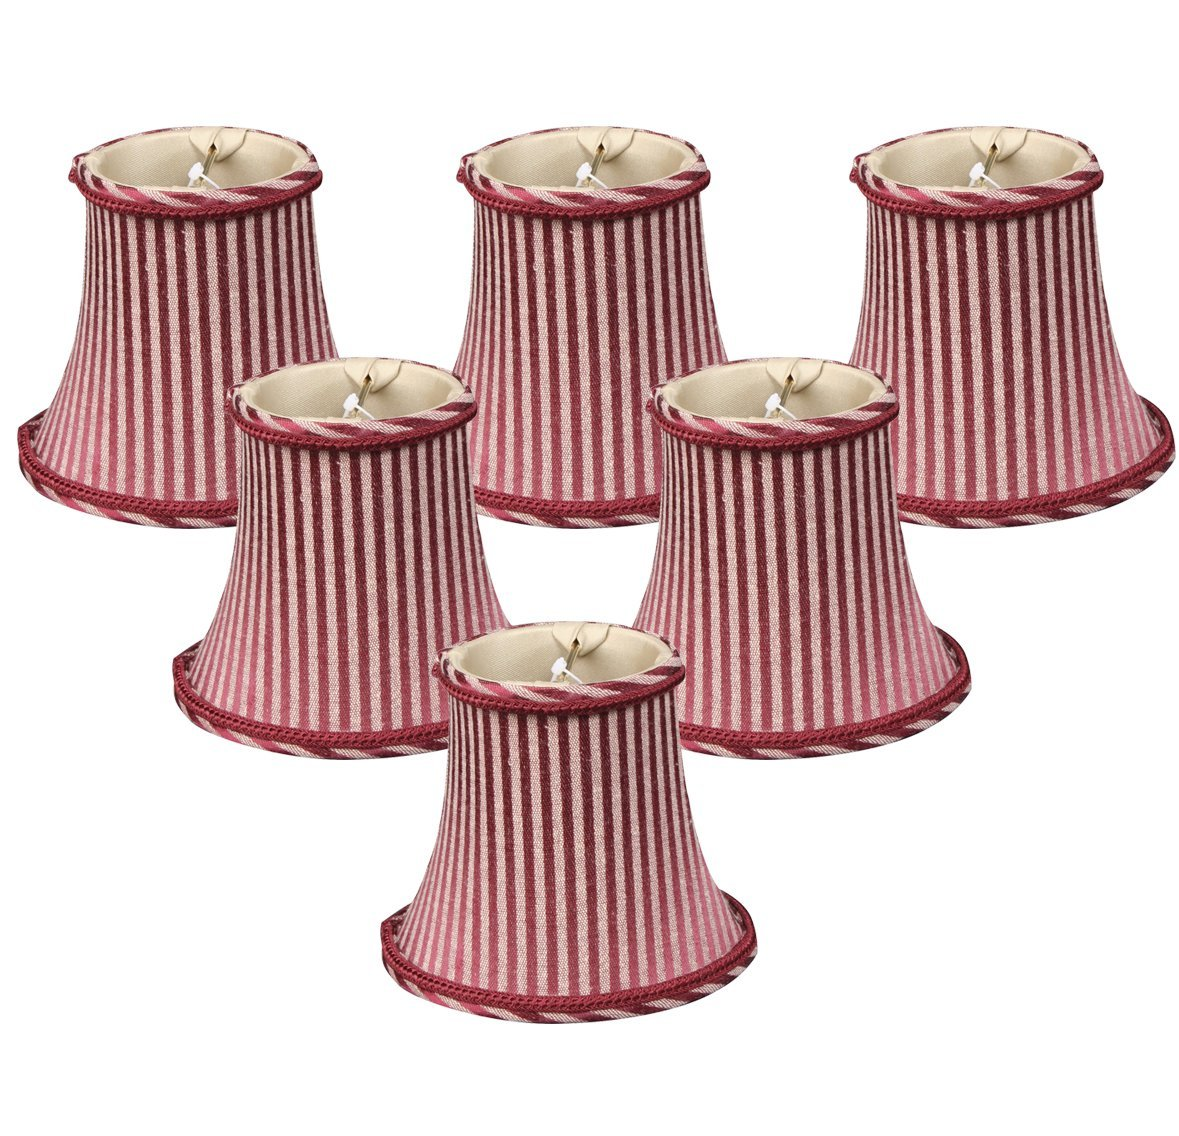 (6 Pack) Royal Designs 6'' Burgundy/Antique Gold Striped Chandelier Lamp Shade, 3 x 6 x 4.5 (CS-611AGL/BUR-6) by Royal Designs, Inc